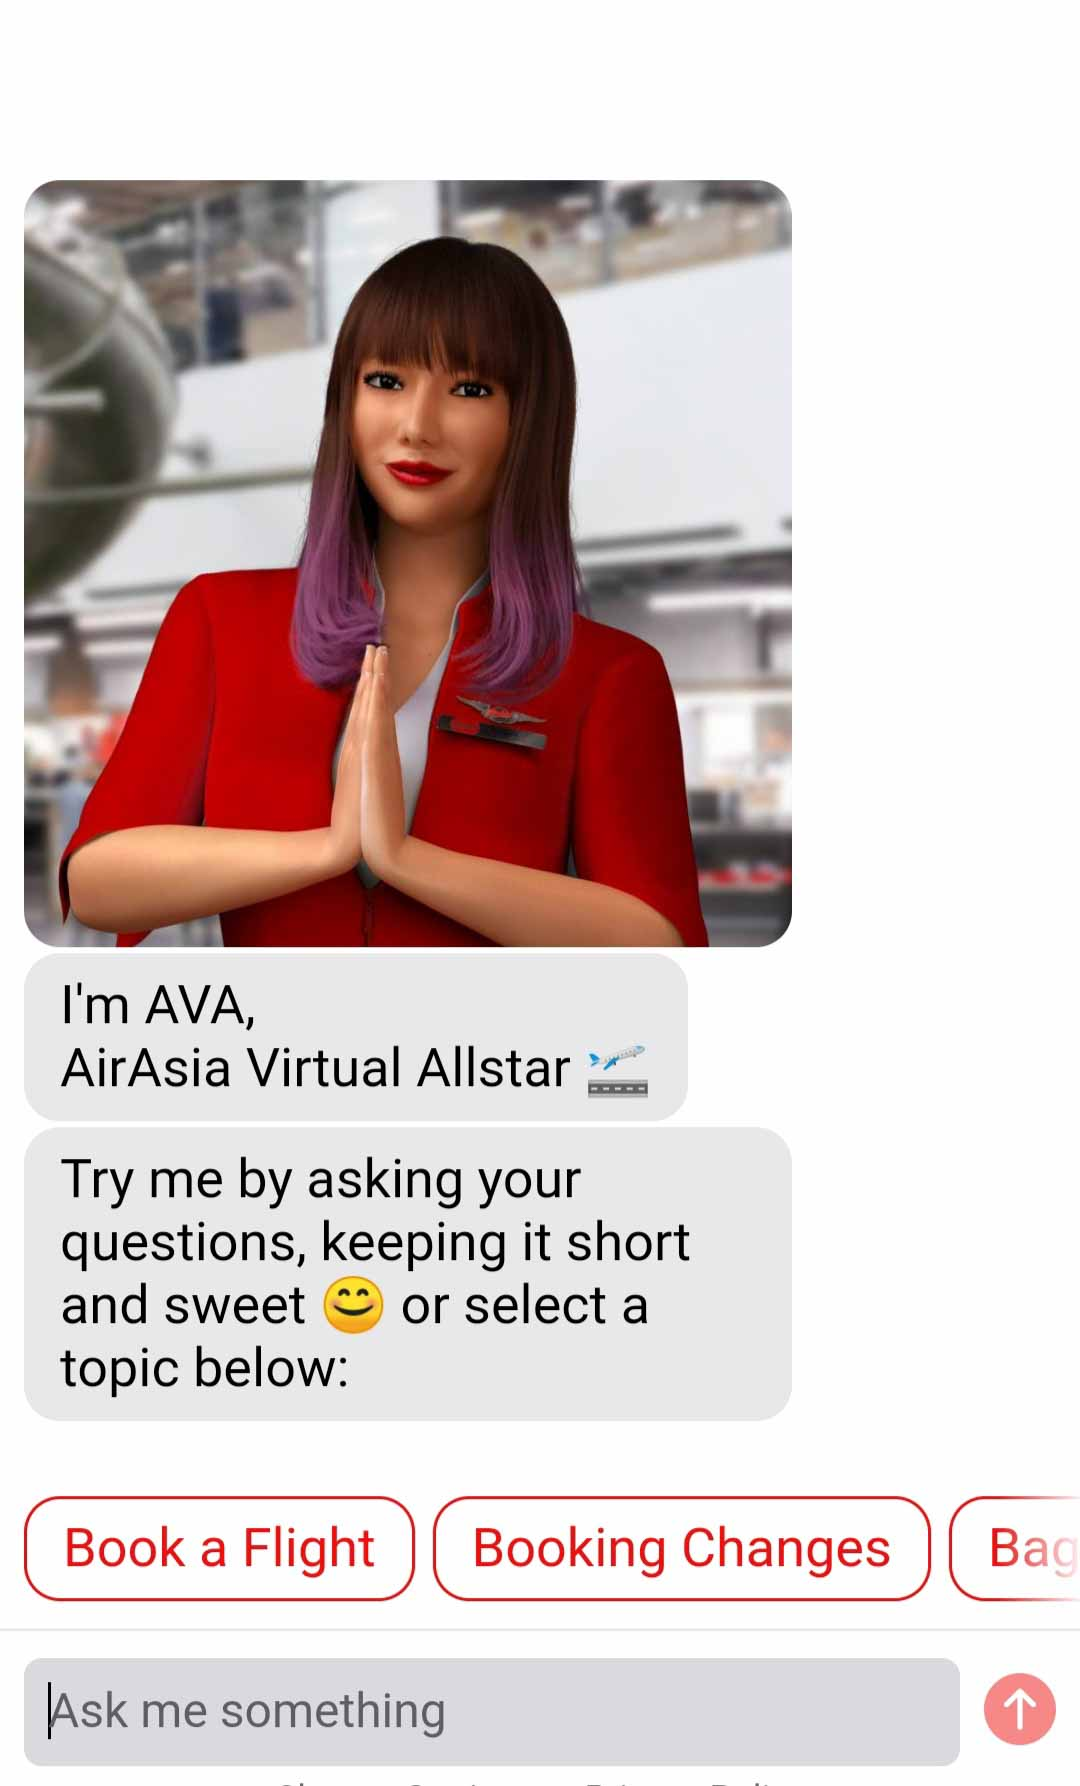 AVA, Airasia's virtual assistant bot